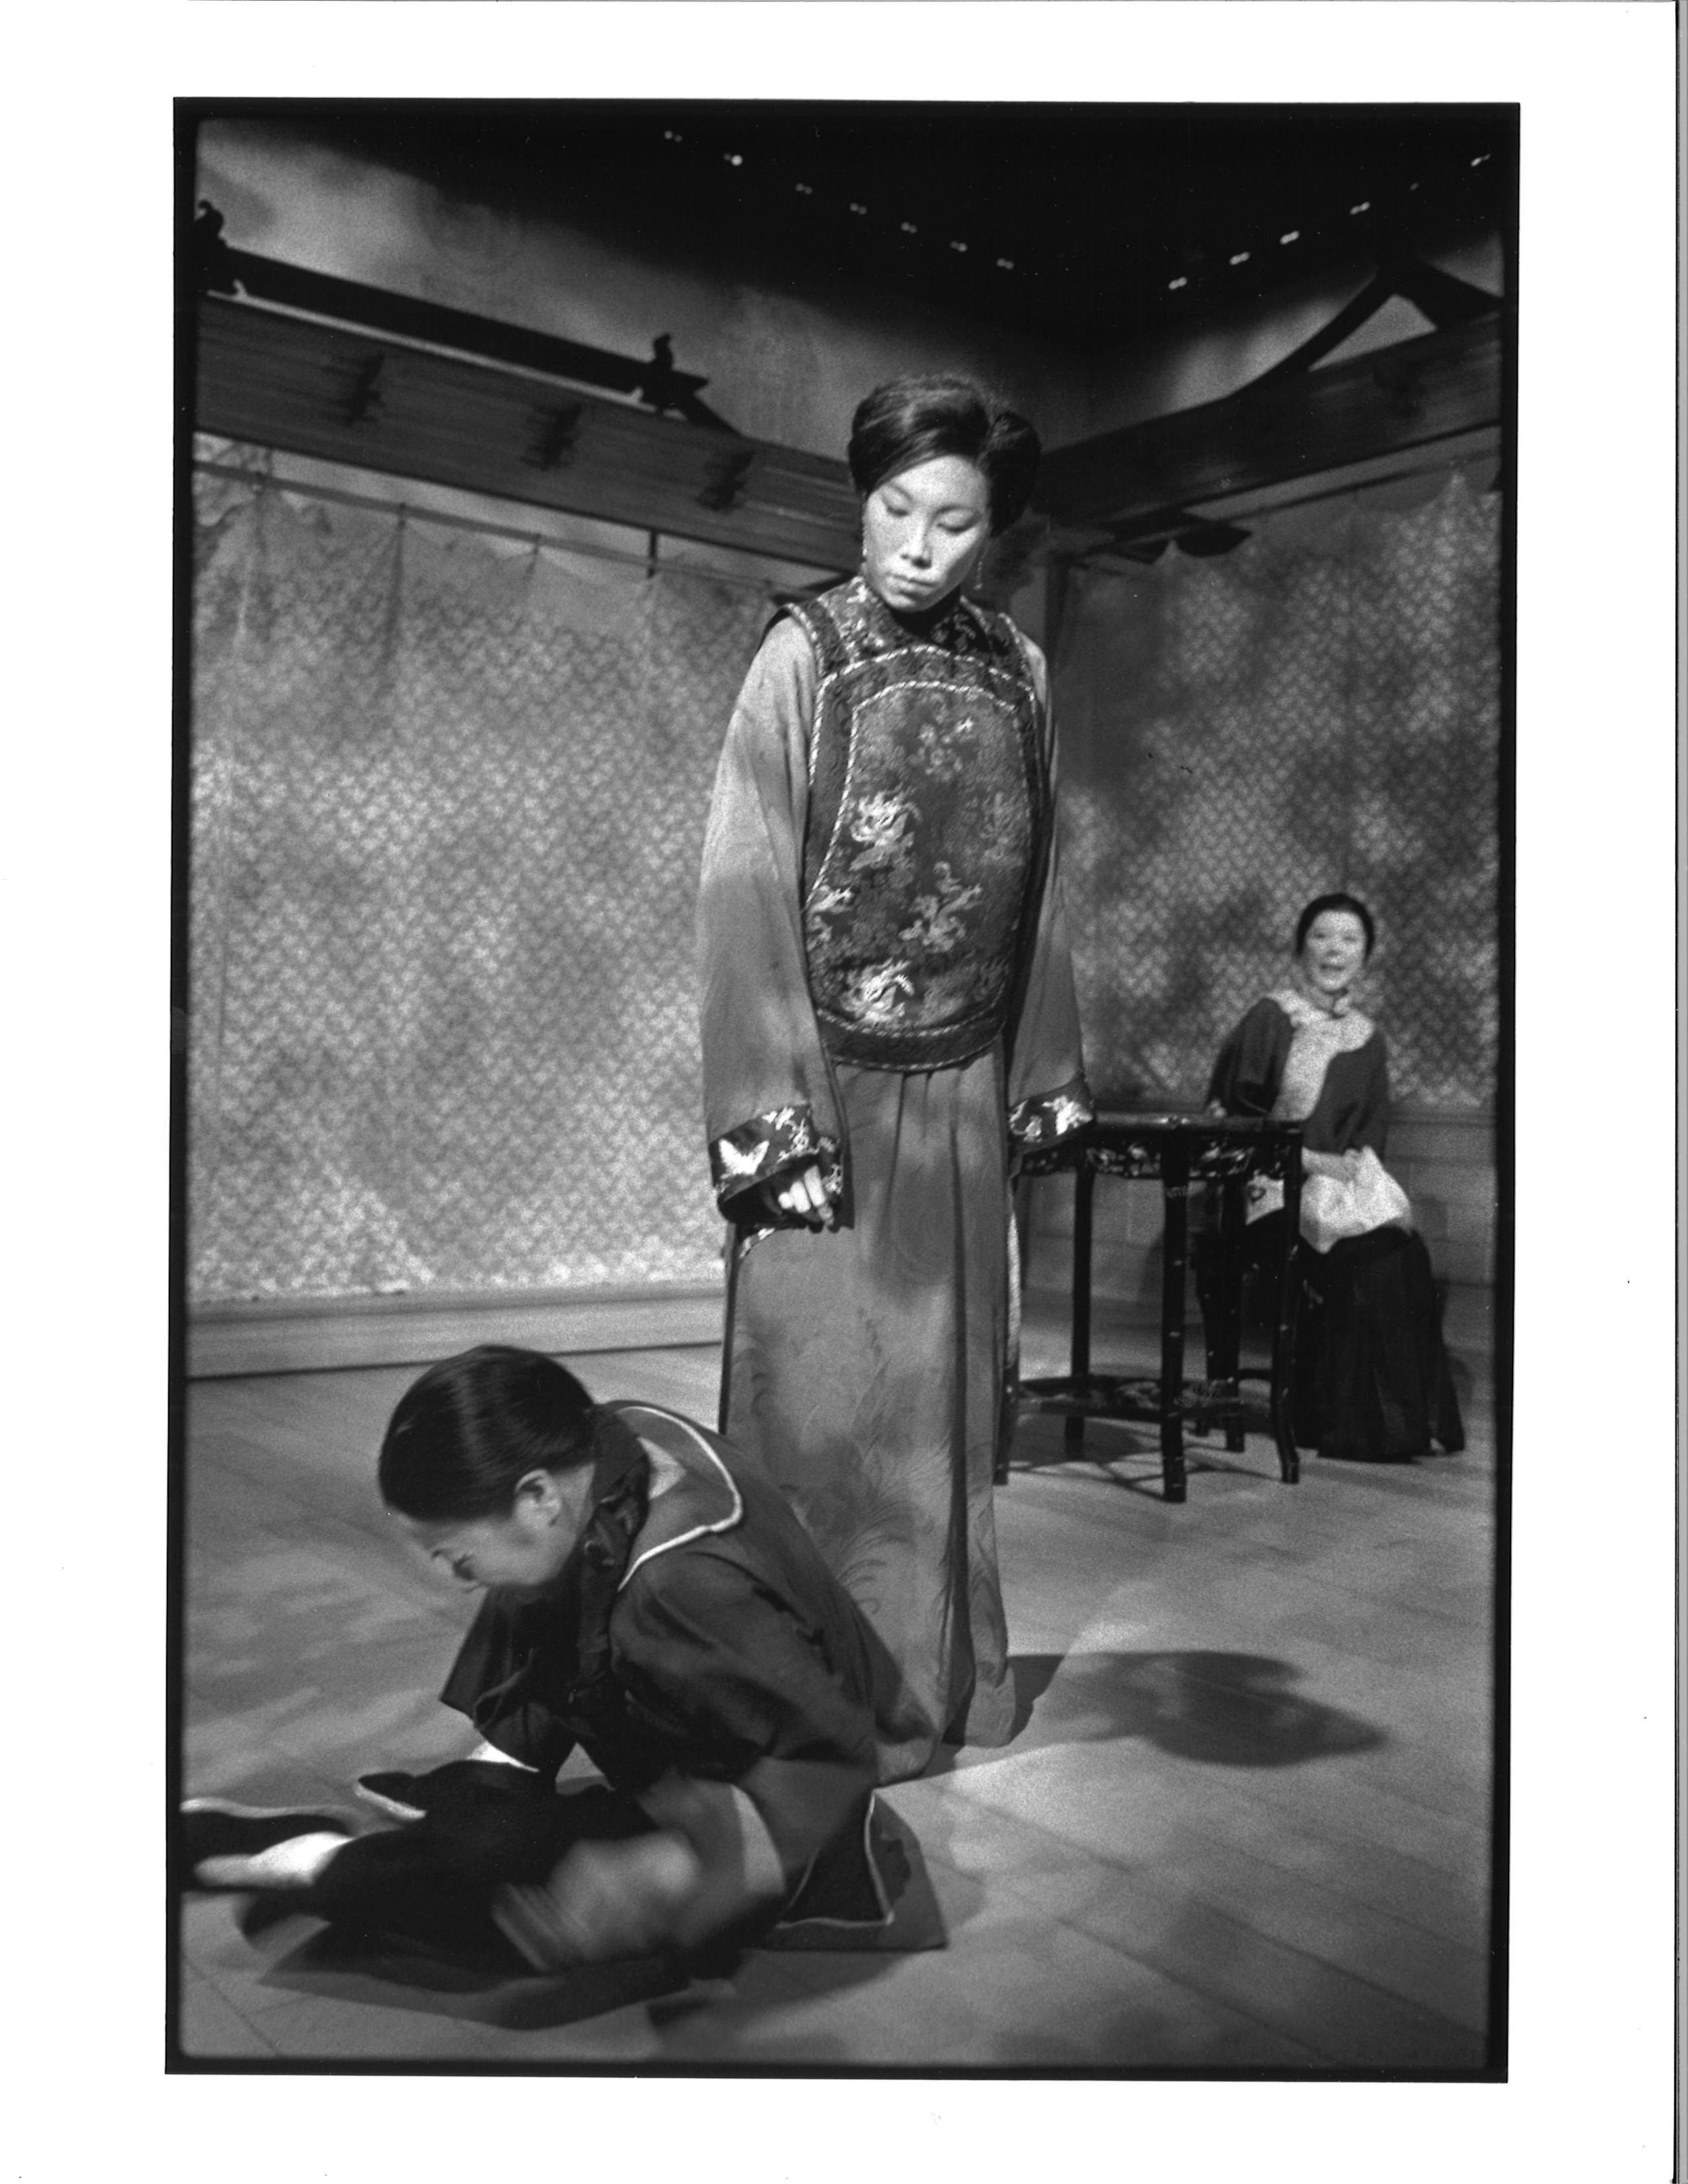 Julyana Soelistyo, Jodi Long, and Tsai Chin Photo by Michal Daniels, from The Public Theater production in 1996.